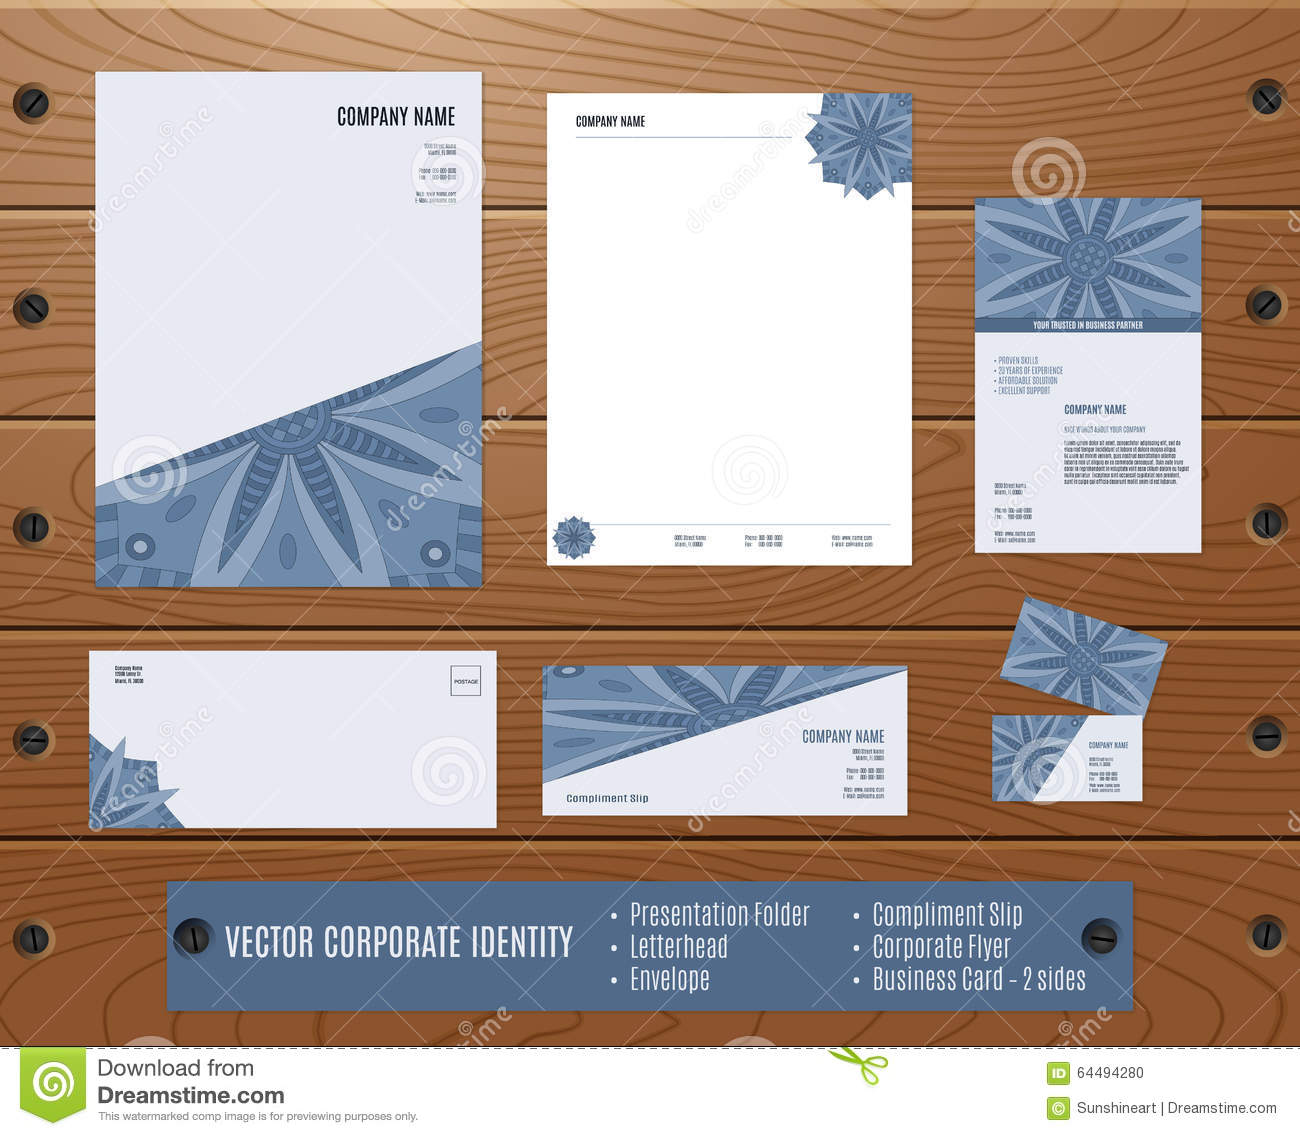 Letterhead Envelopes: Corporate Identity Set: Presentation Folder, Letterhead